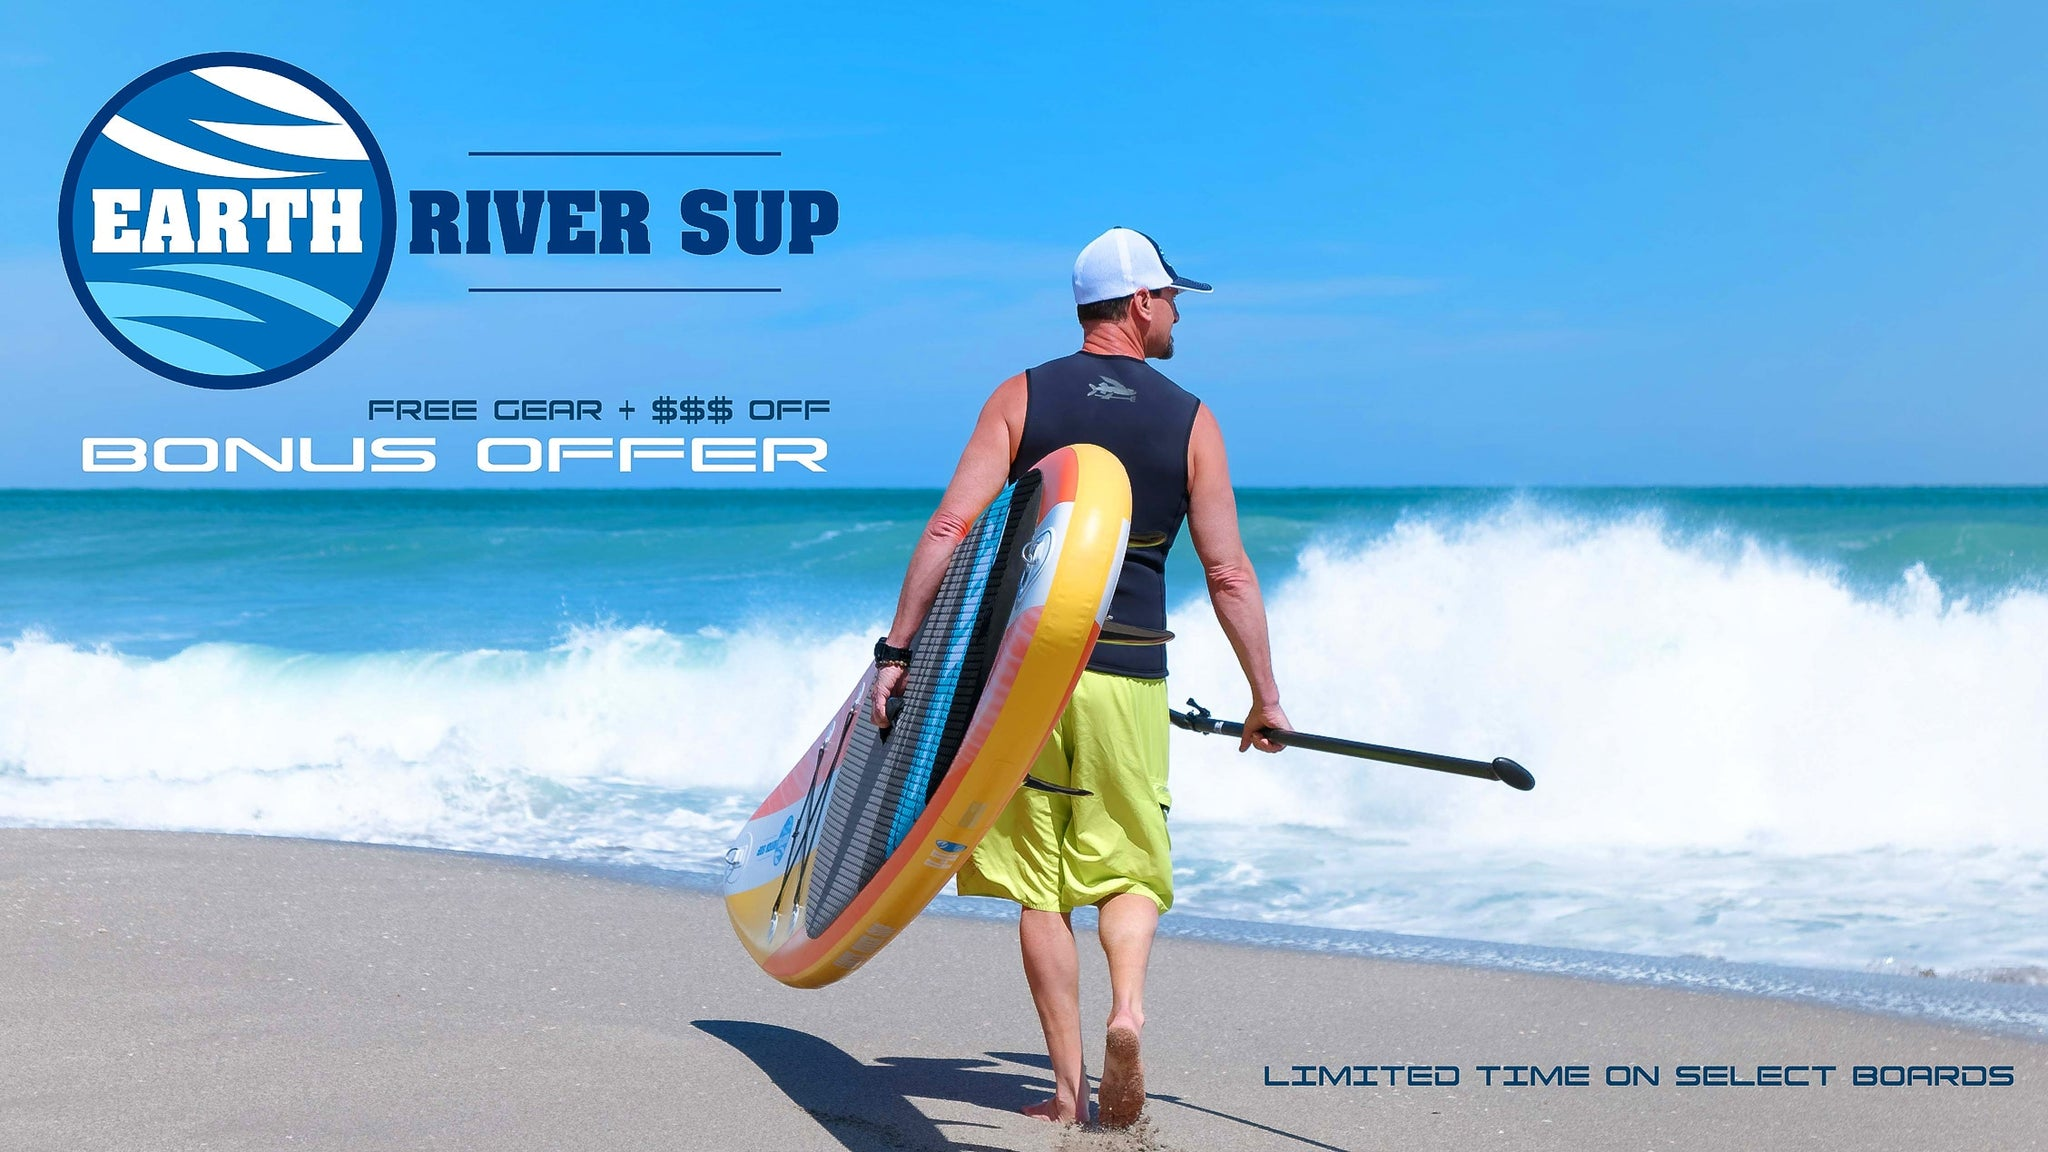 07ced97b1e46 Inflatable Paddle Board Sale and Free Gear Bonus Offer. SHOP NOW